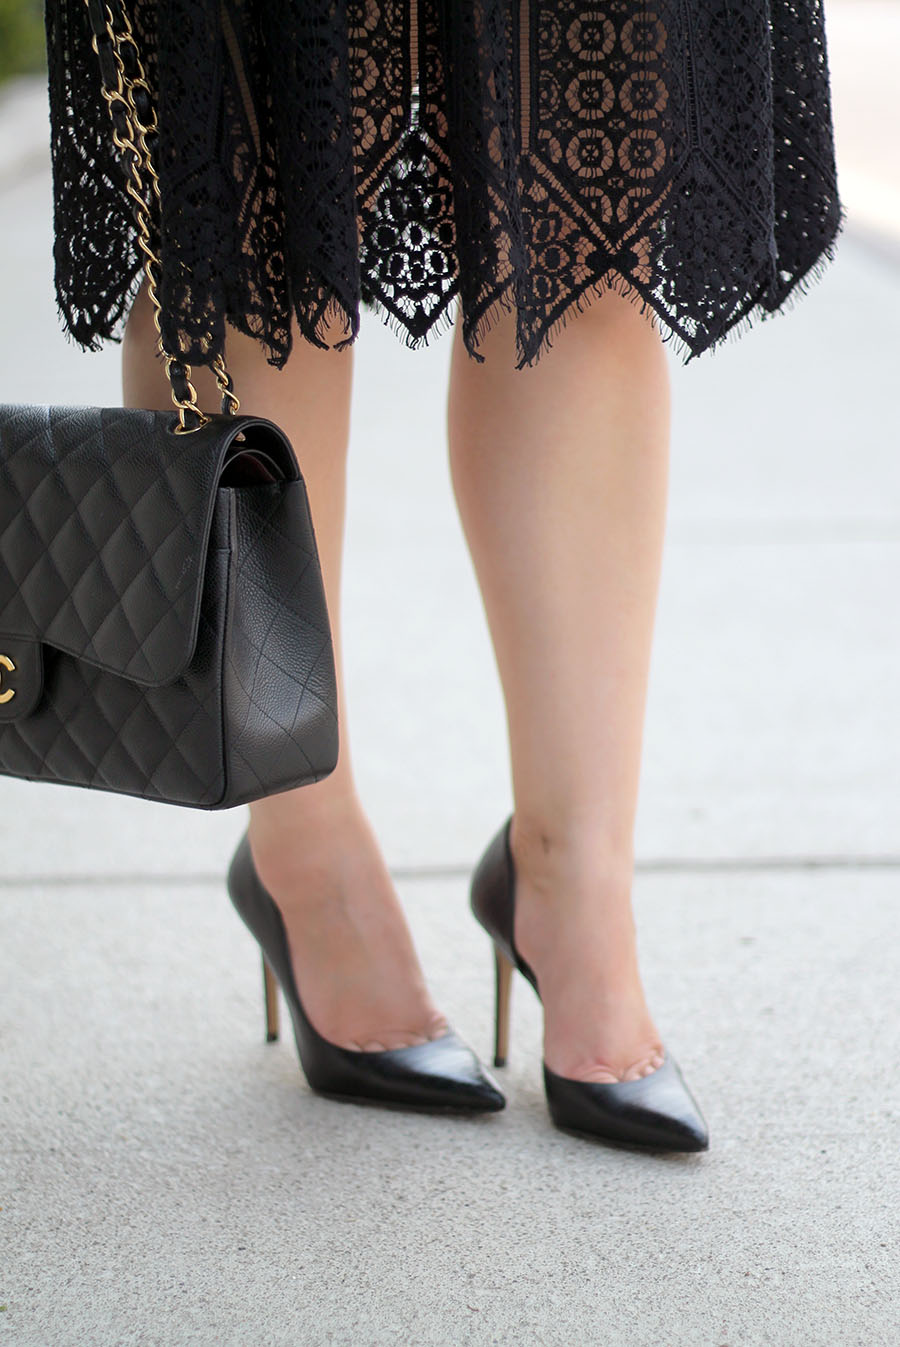 classic-black-heels-lace-dress-quilted-handabg